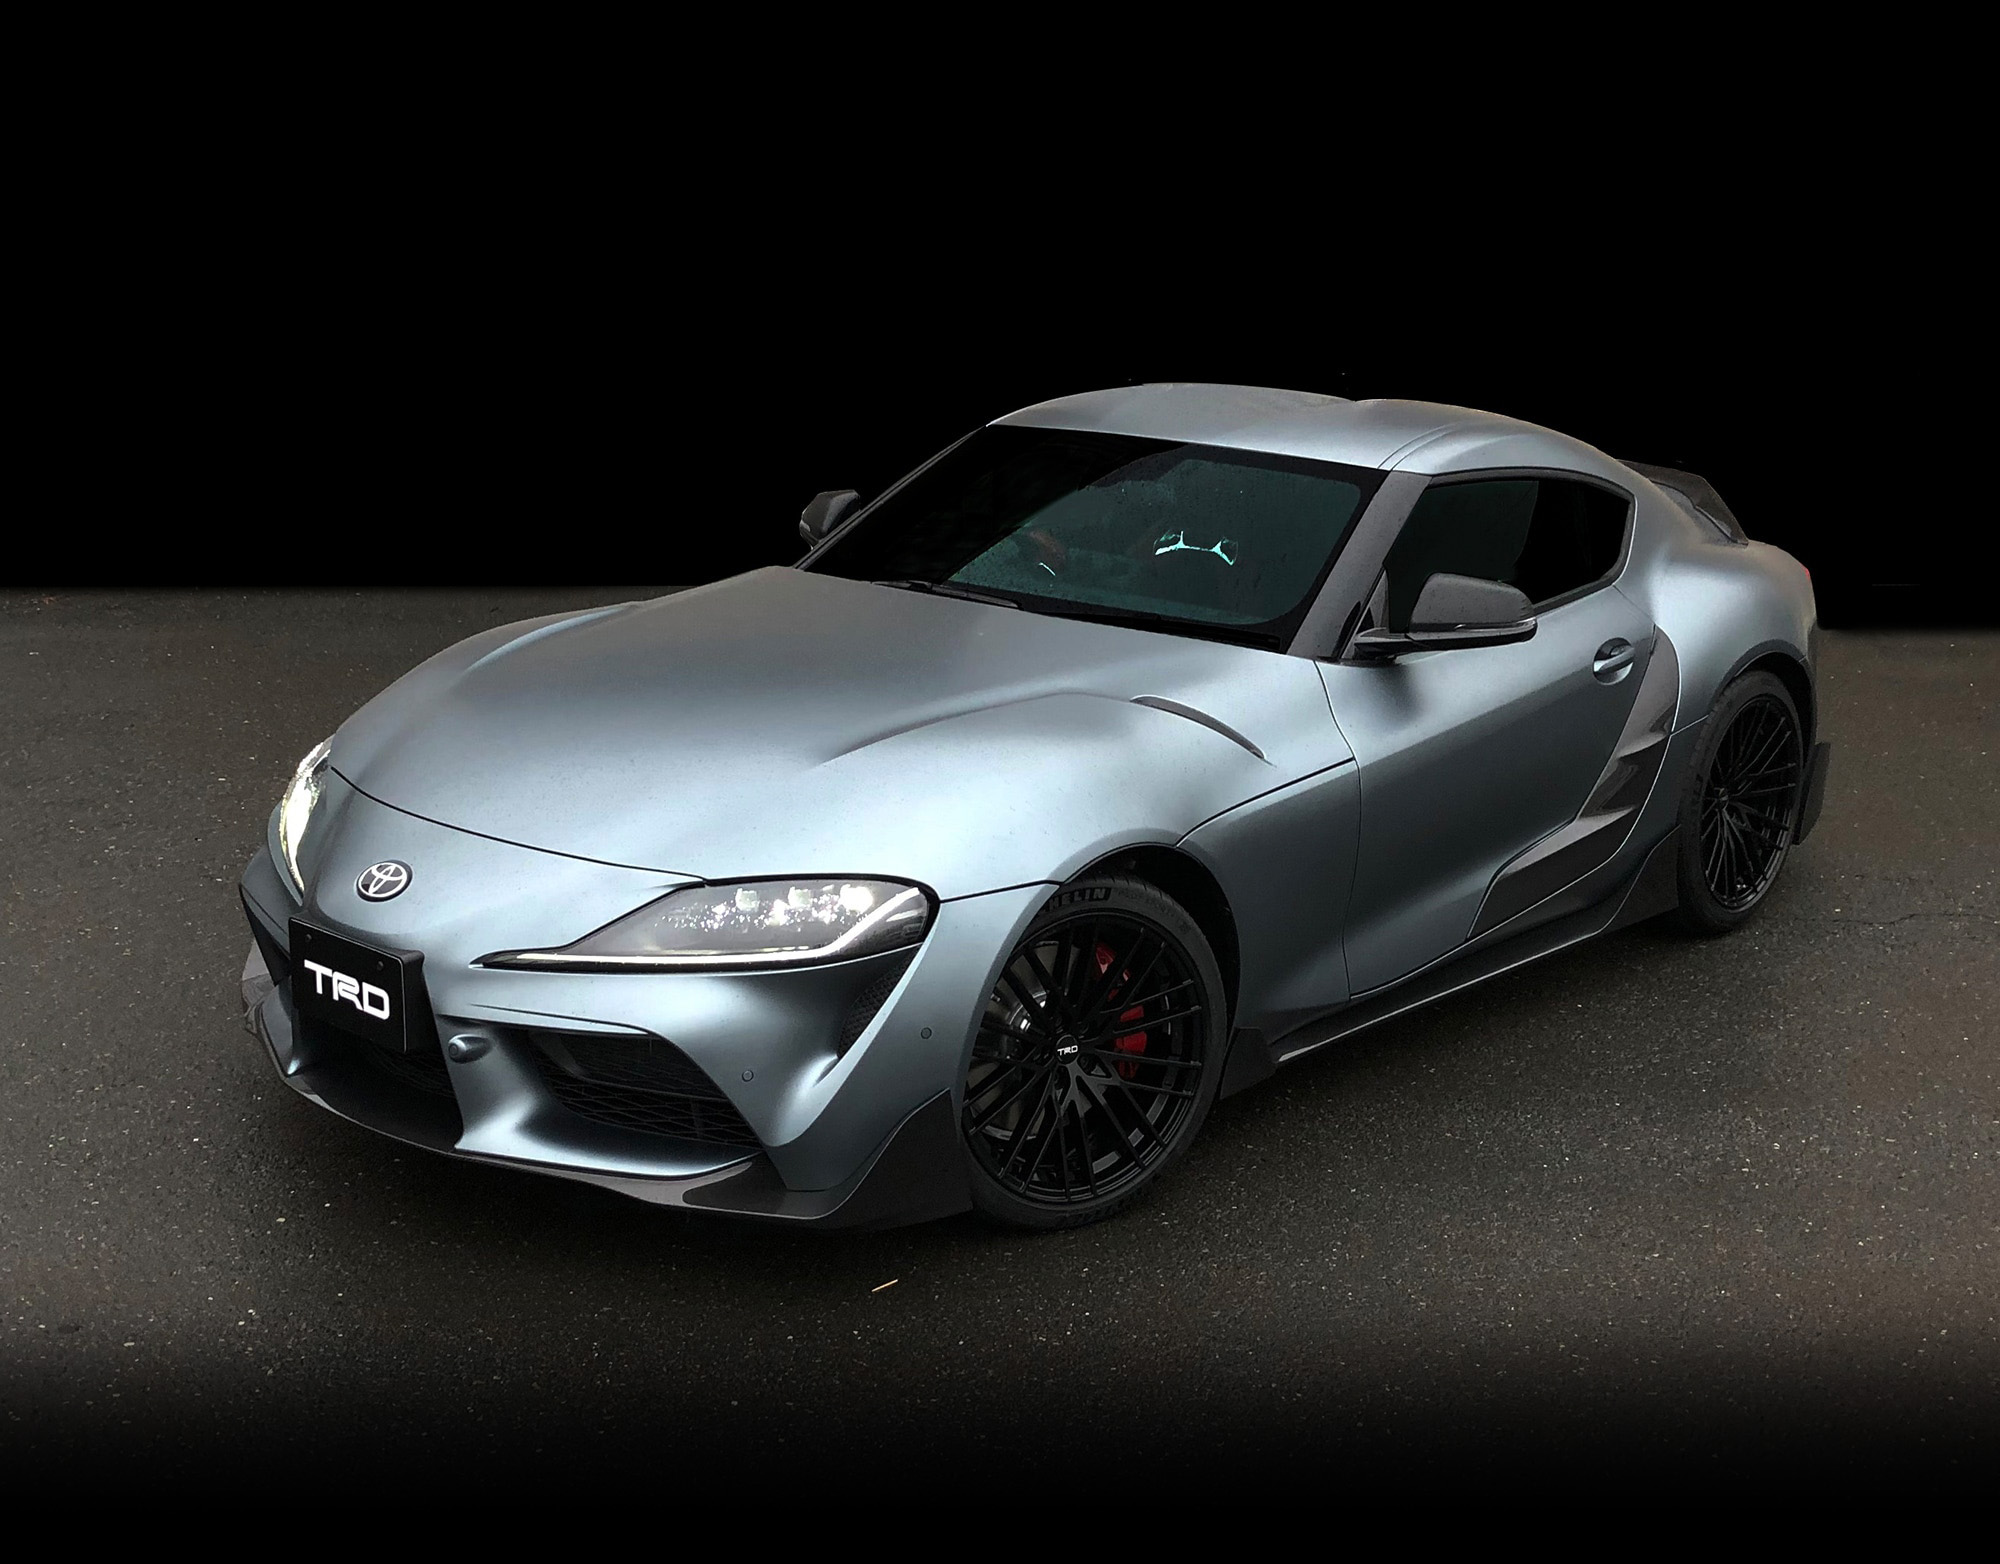 Toyota Supra gets more swagger with TRD Concept